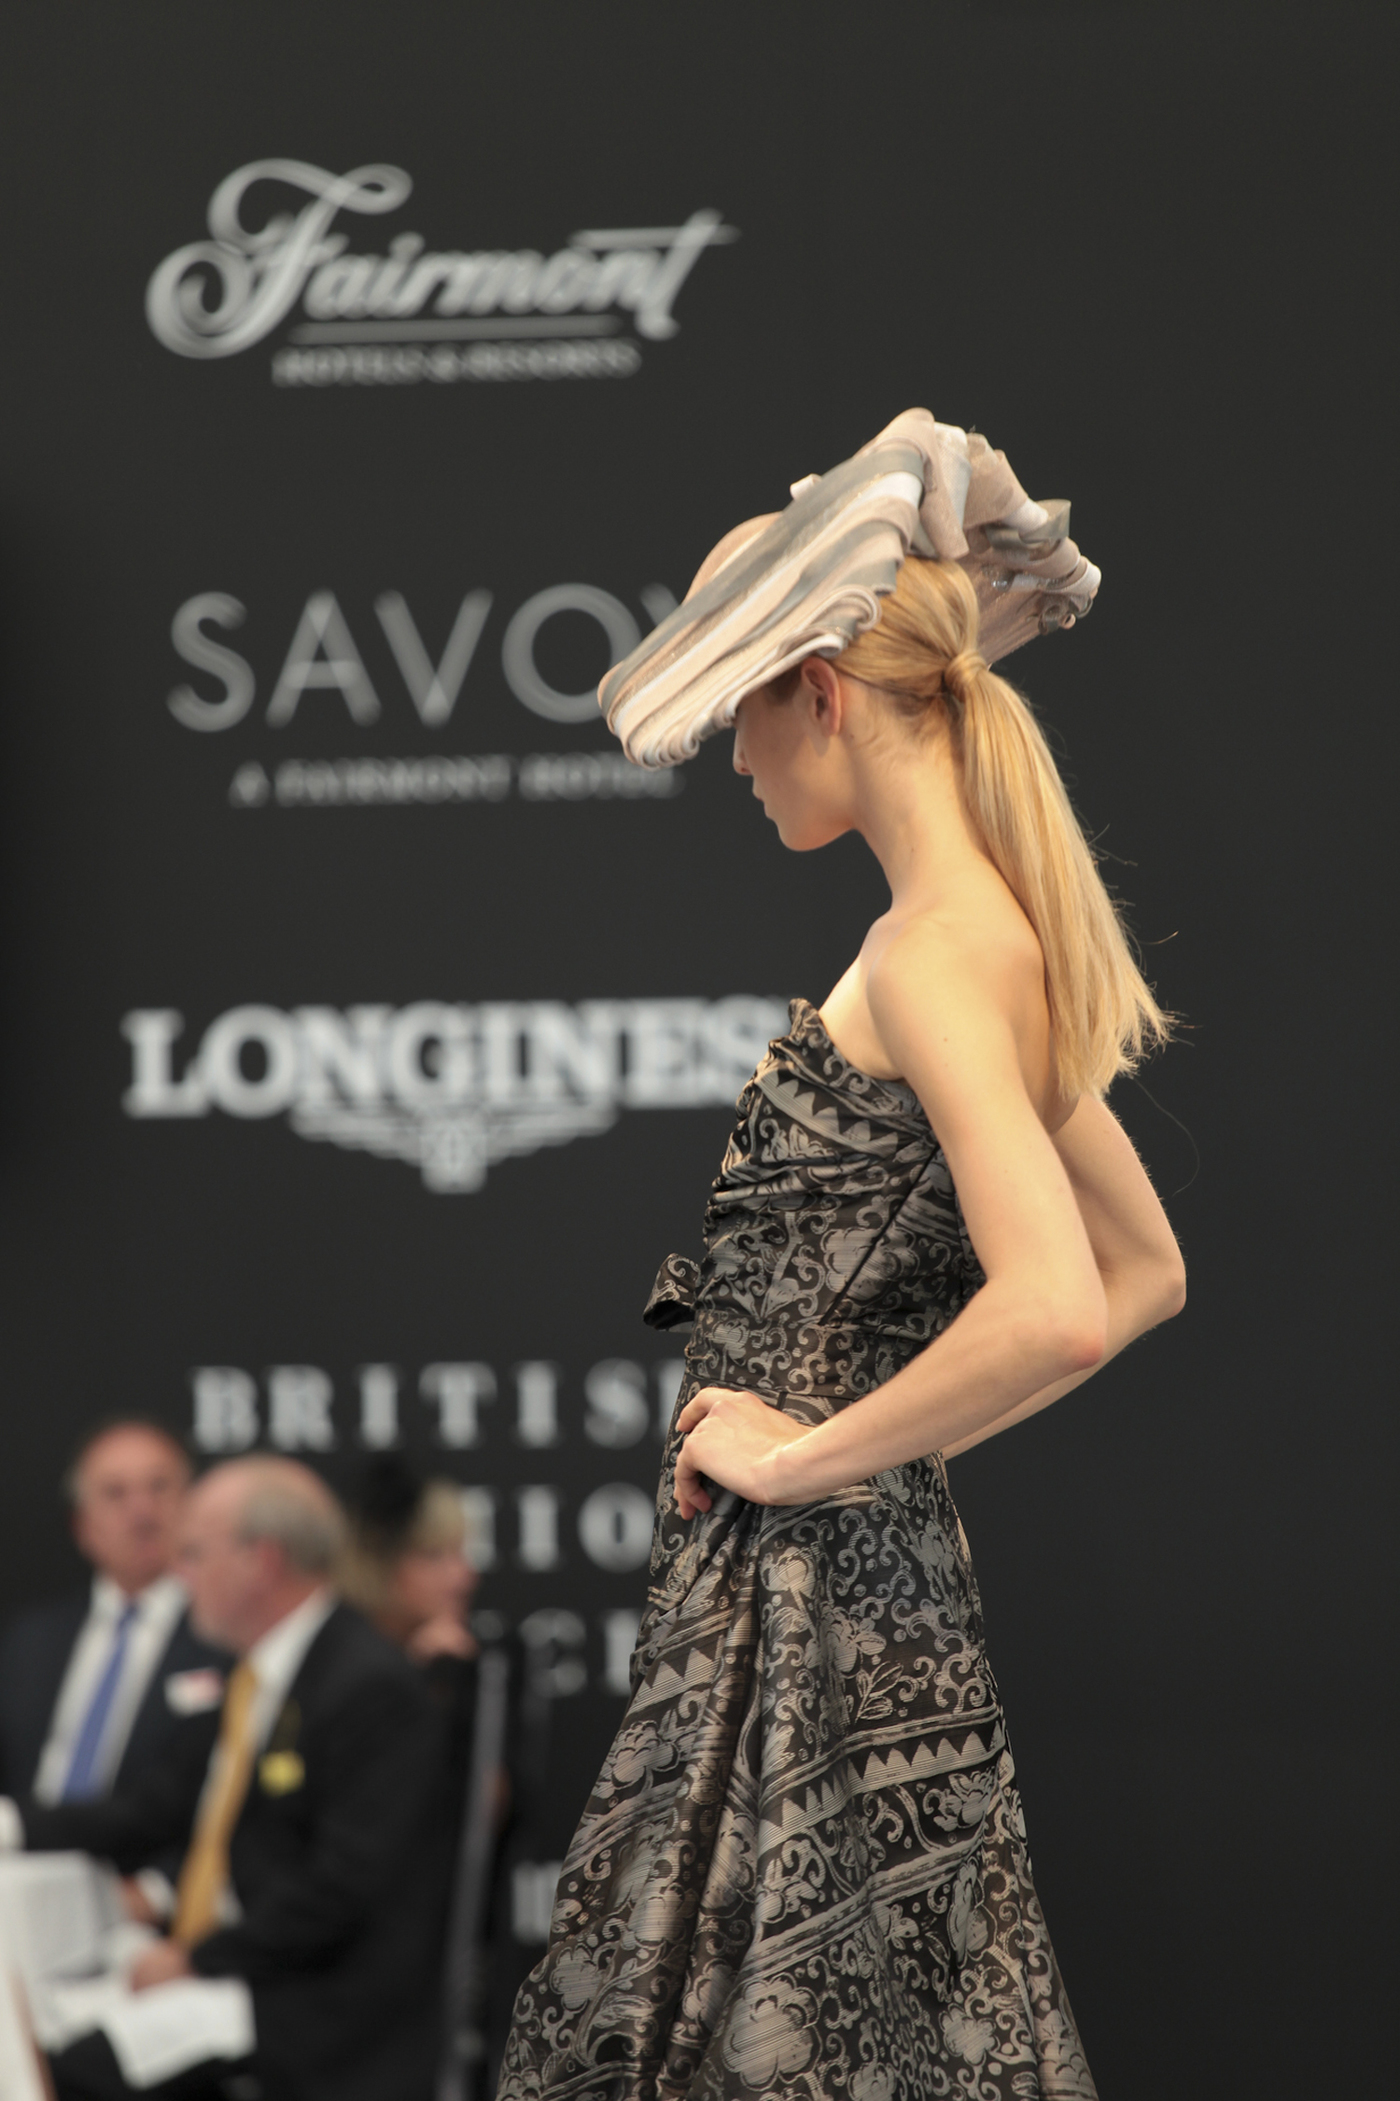 Longines Flat Racing Event: A day of glamour at Ascot with Aaron Kwok, Longines ambassador of Elegance 10